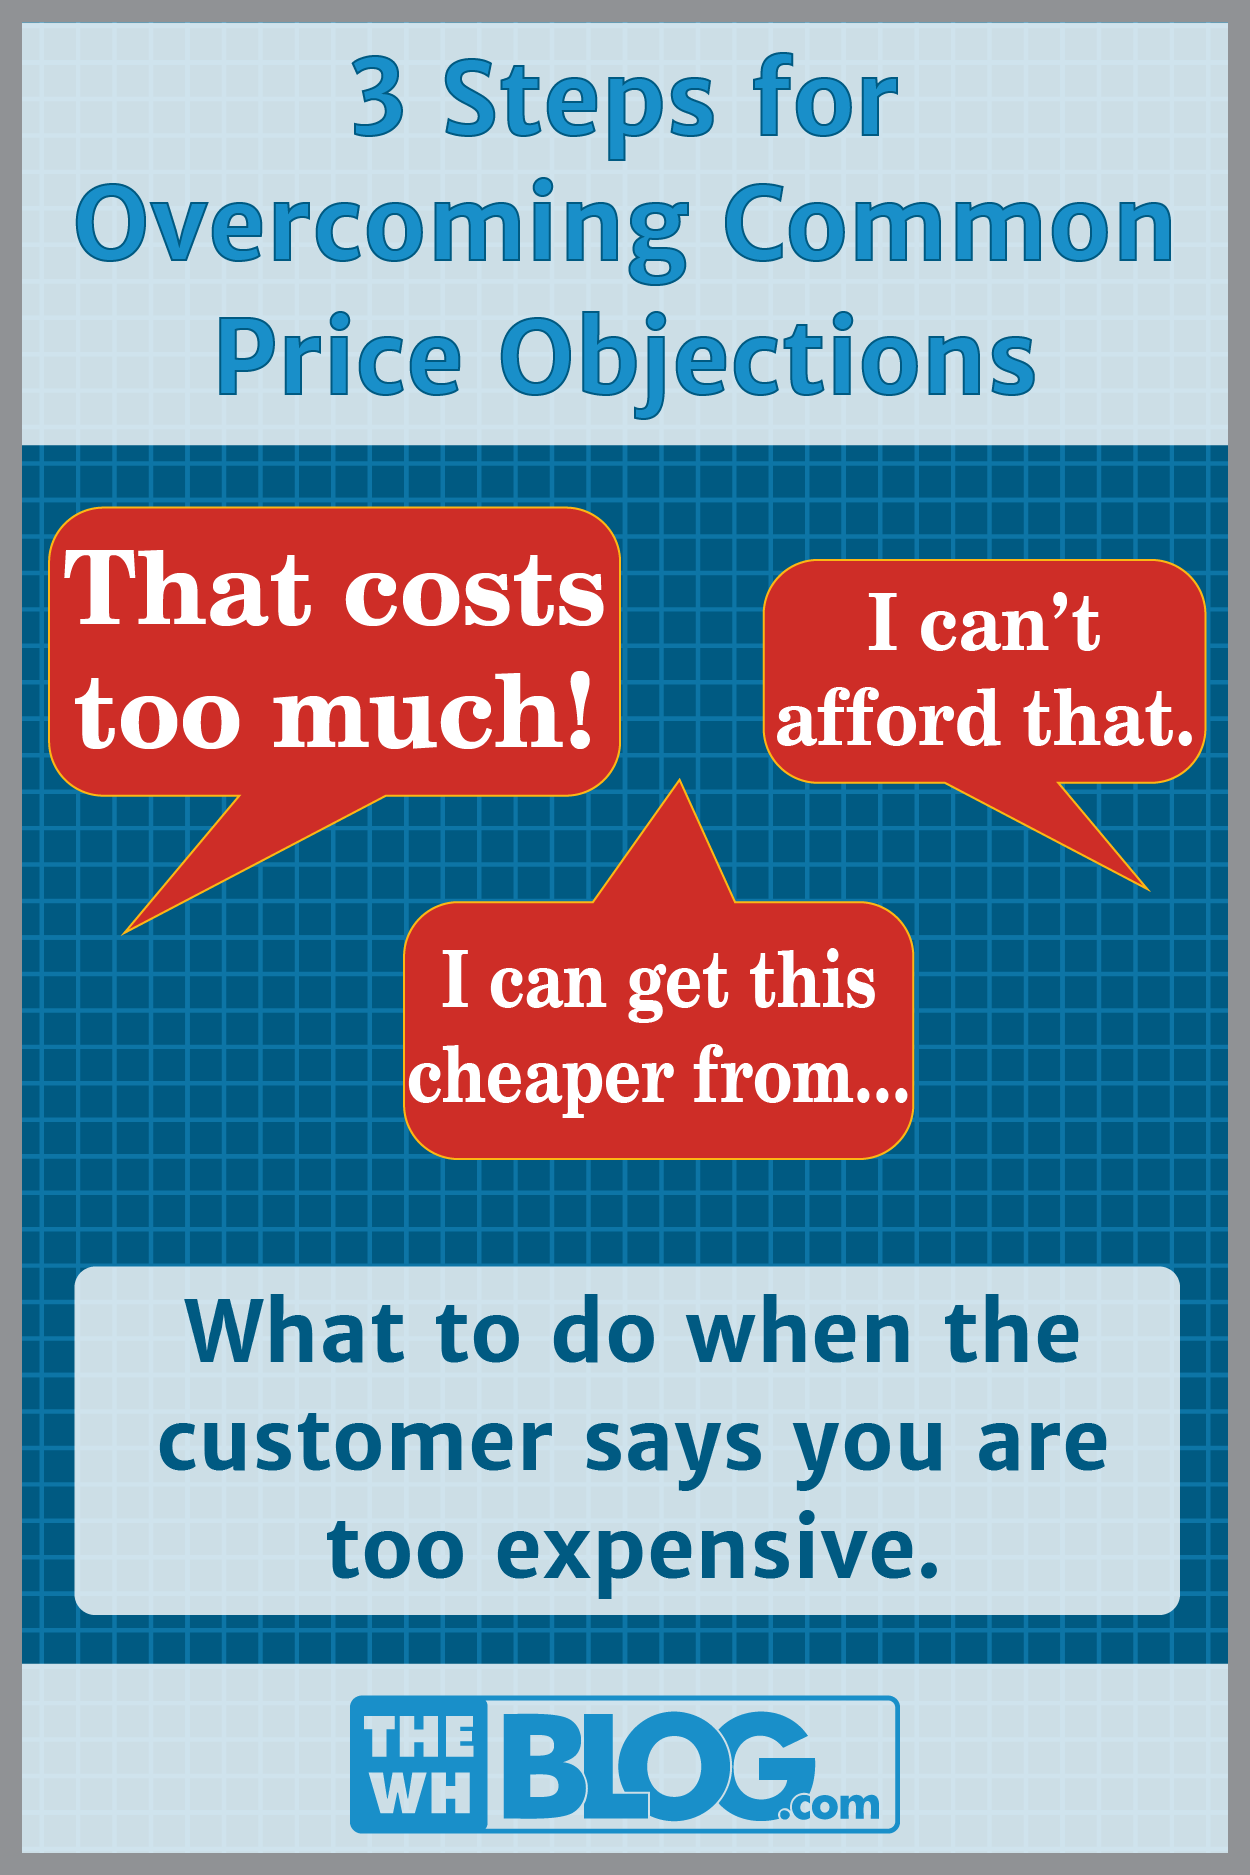 Blog Article Cover: 3 steps for overcoming common price objections: 'That costs too much, I can't afford that, I can get this cheaper from...